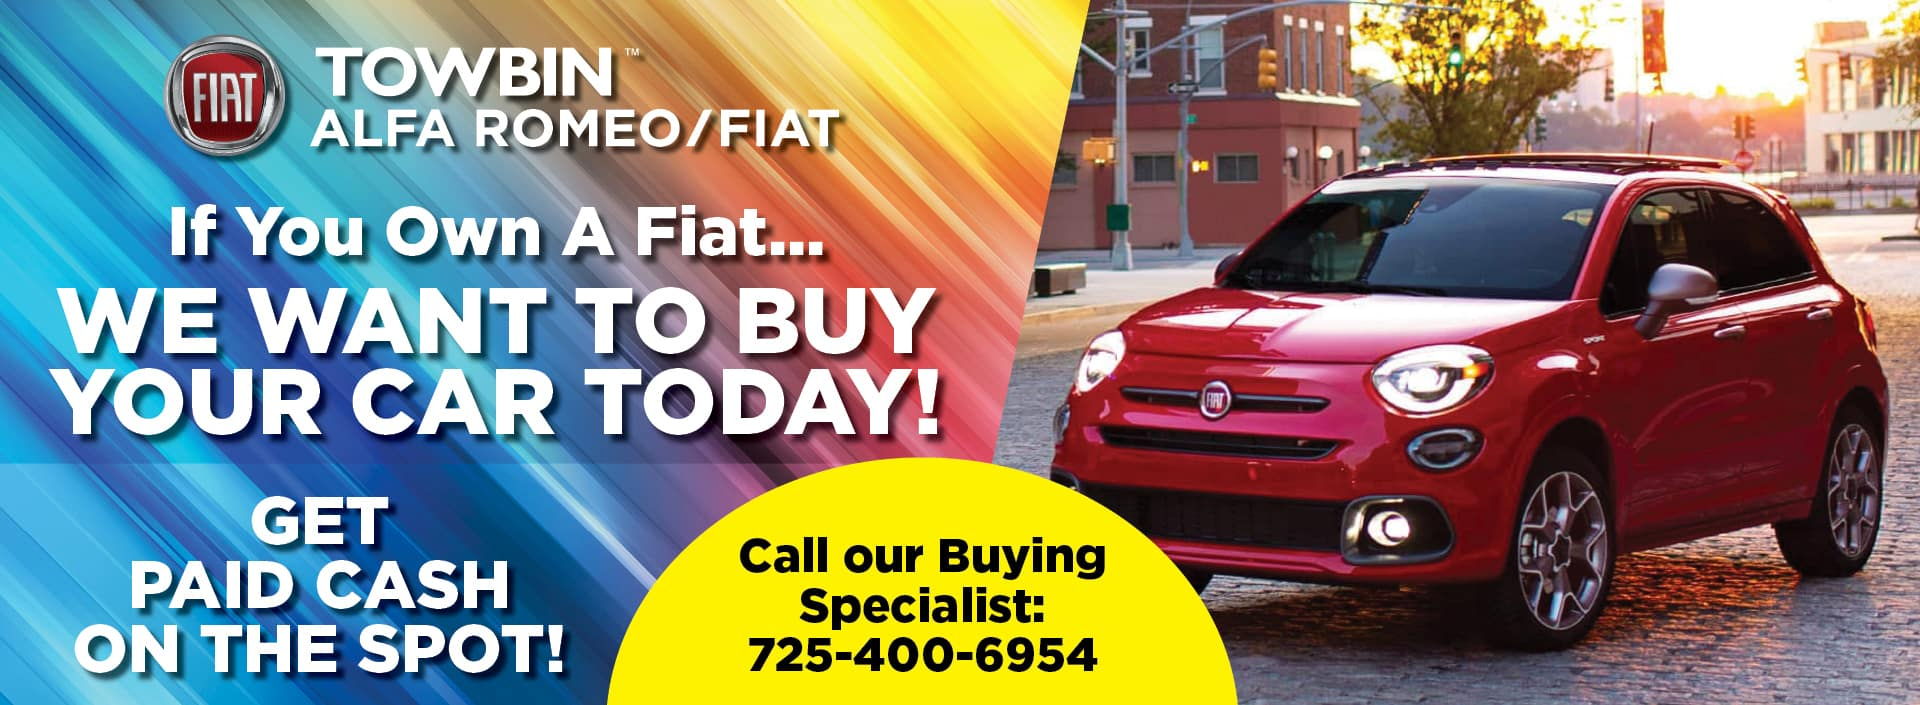 TAGF-1673-G-1920 x 705-FIAT WE WANT TO BUY YOUR CAR WEB BANNER-BE